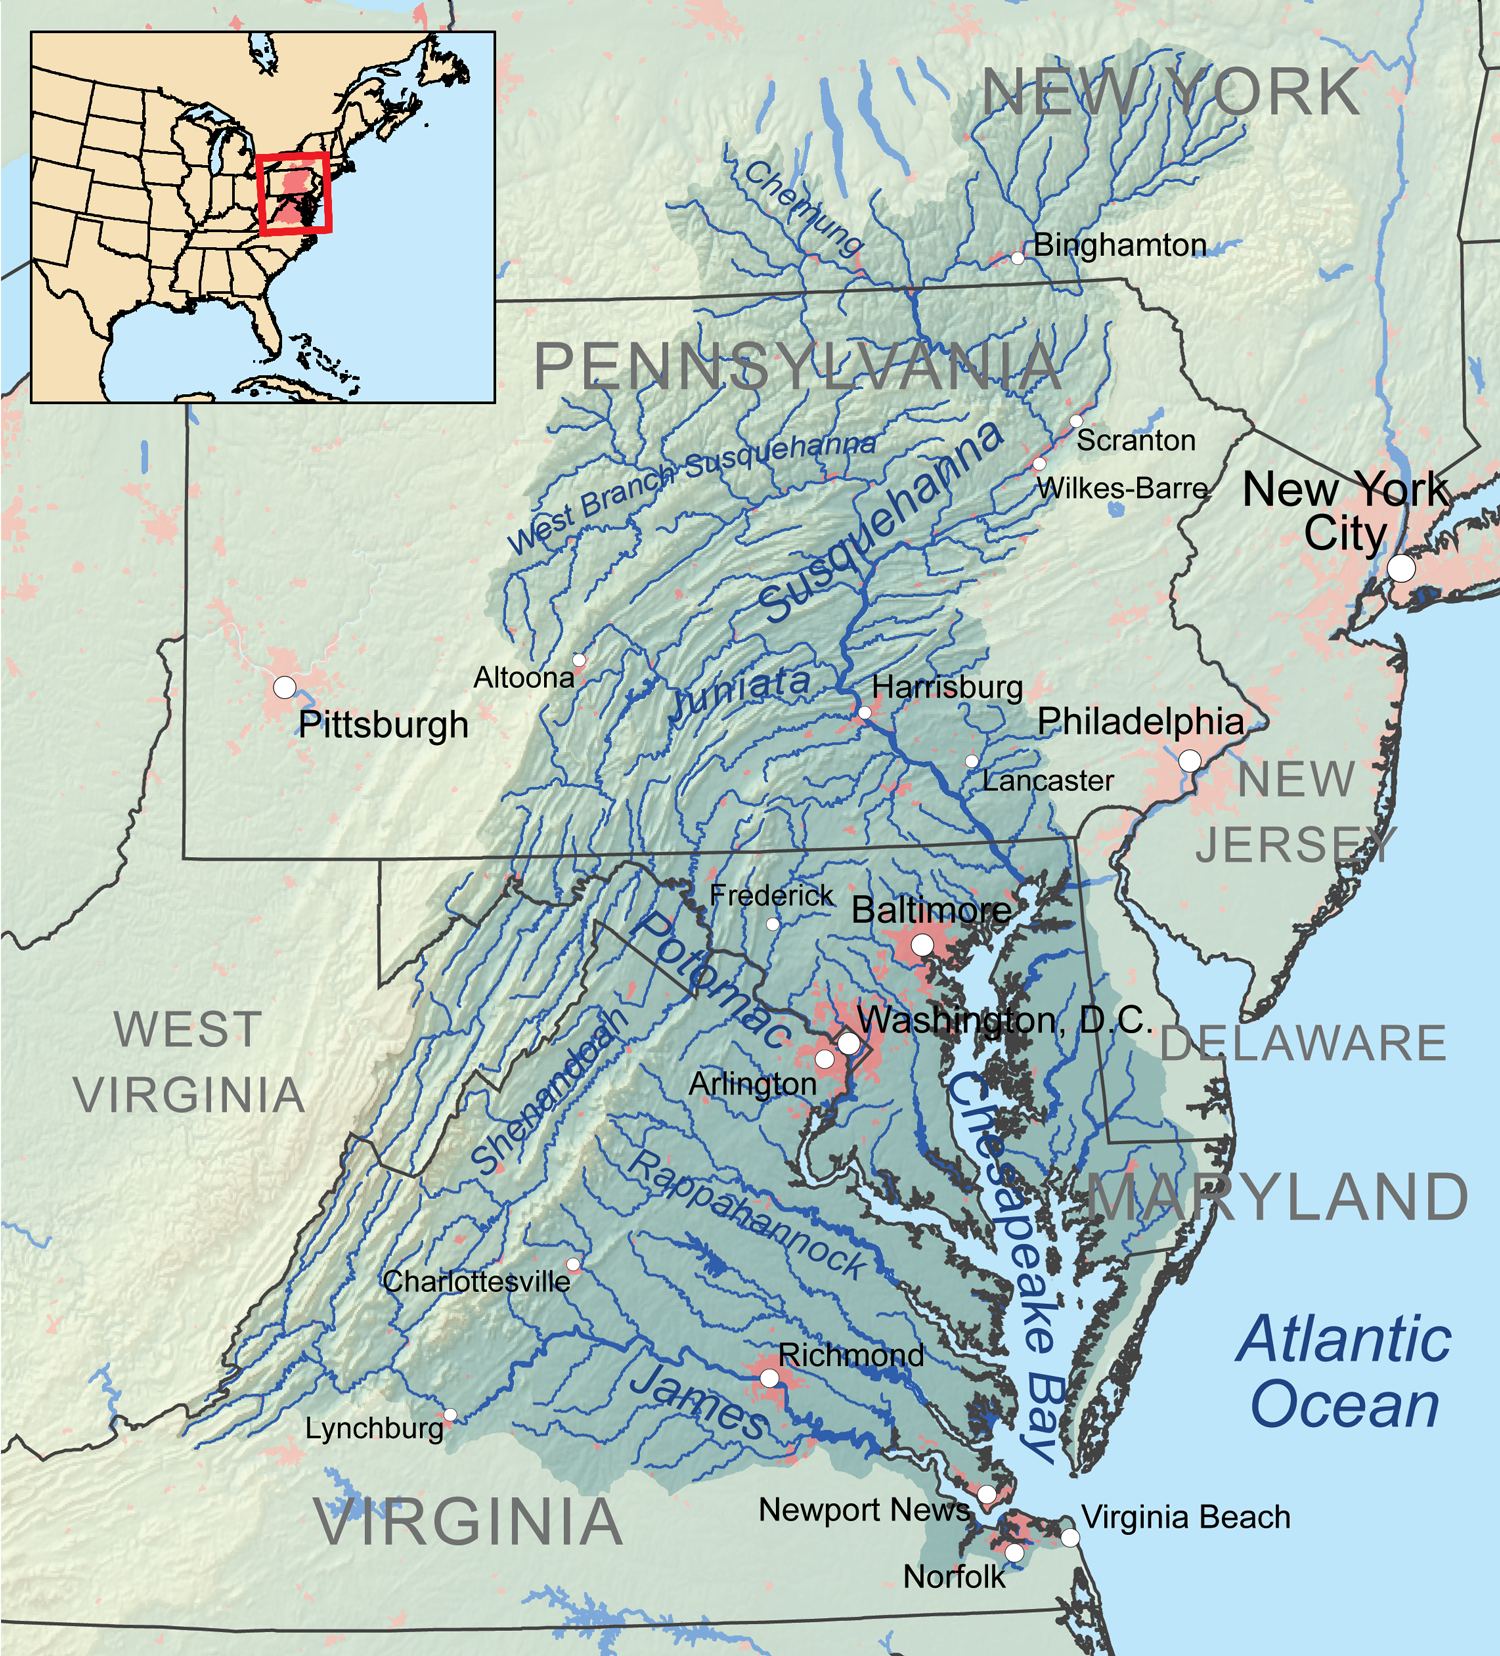 Map Of Virginia And Maryland With Waterways Google Search - Us lakes and rivers map